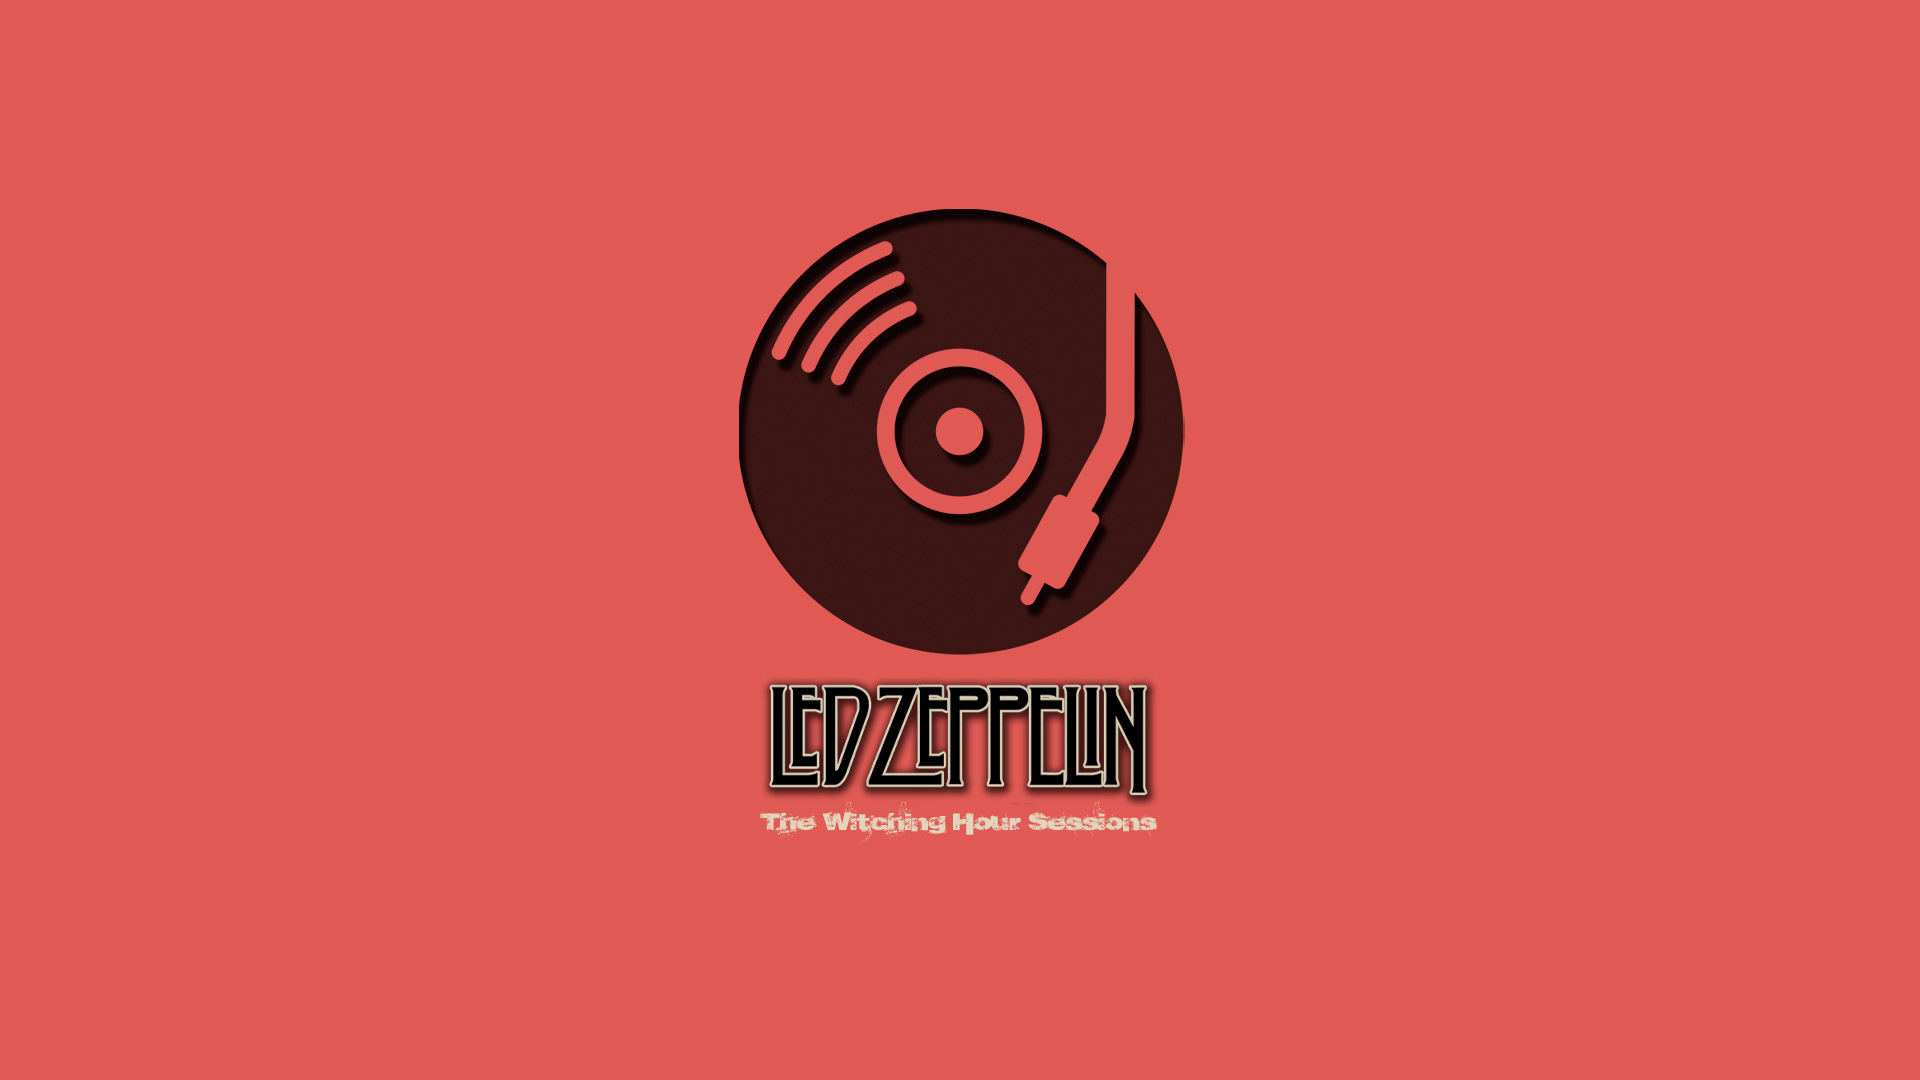 The Witching Hour Session – Led Zeppelin – November 28th 2017